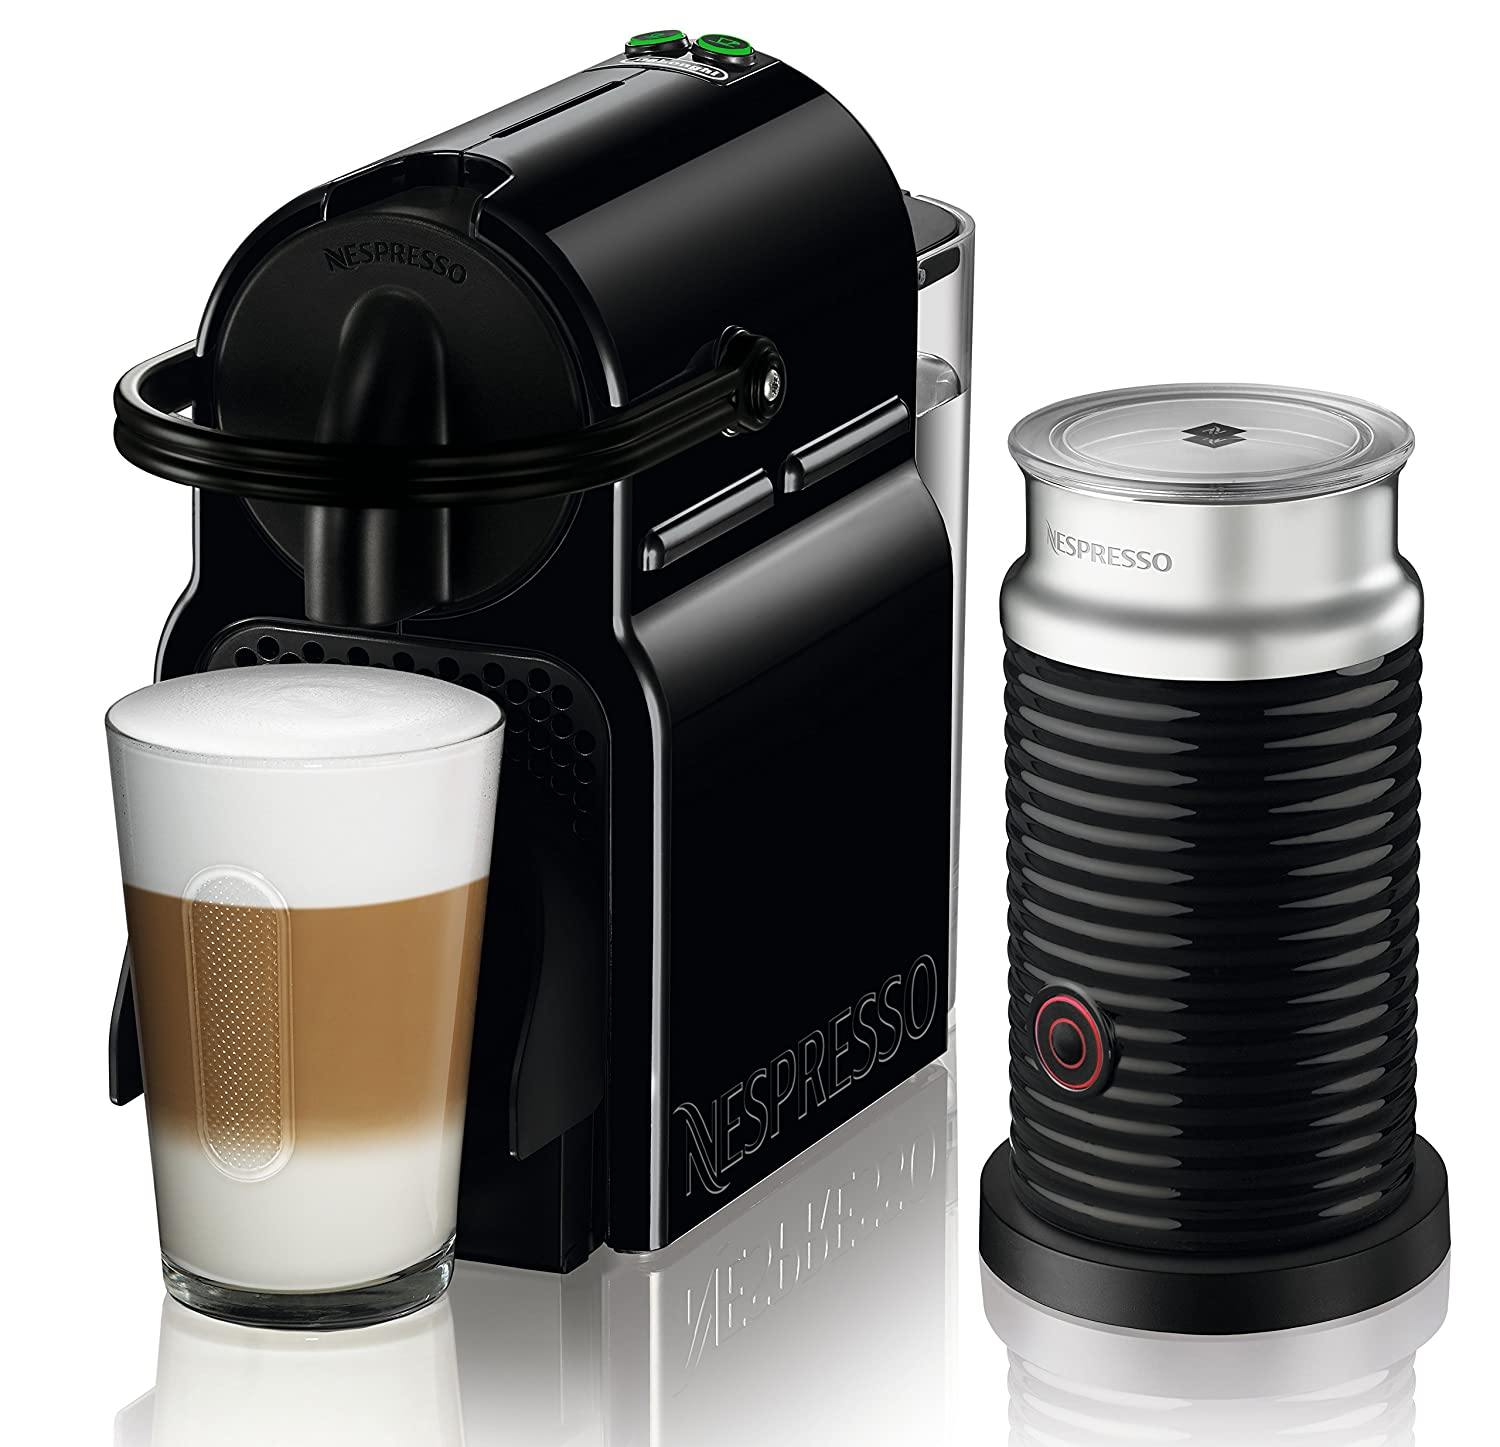 Nespresso (DeLonghi) Inissia Capsule Coffee Machine